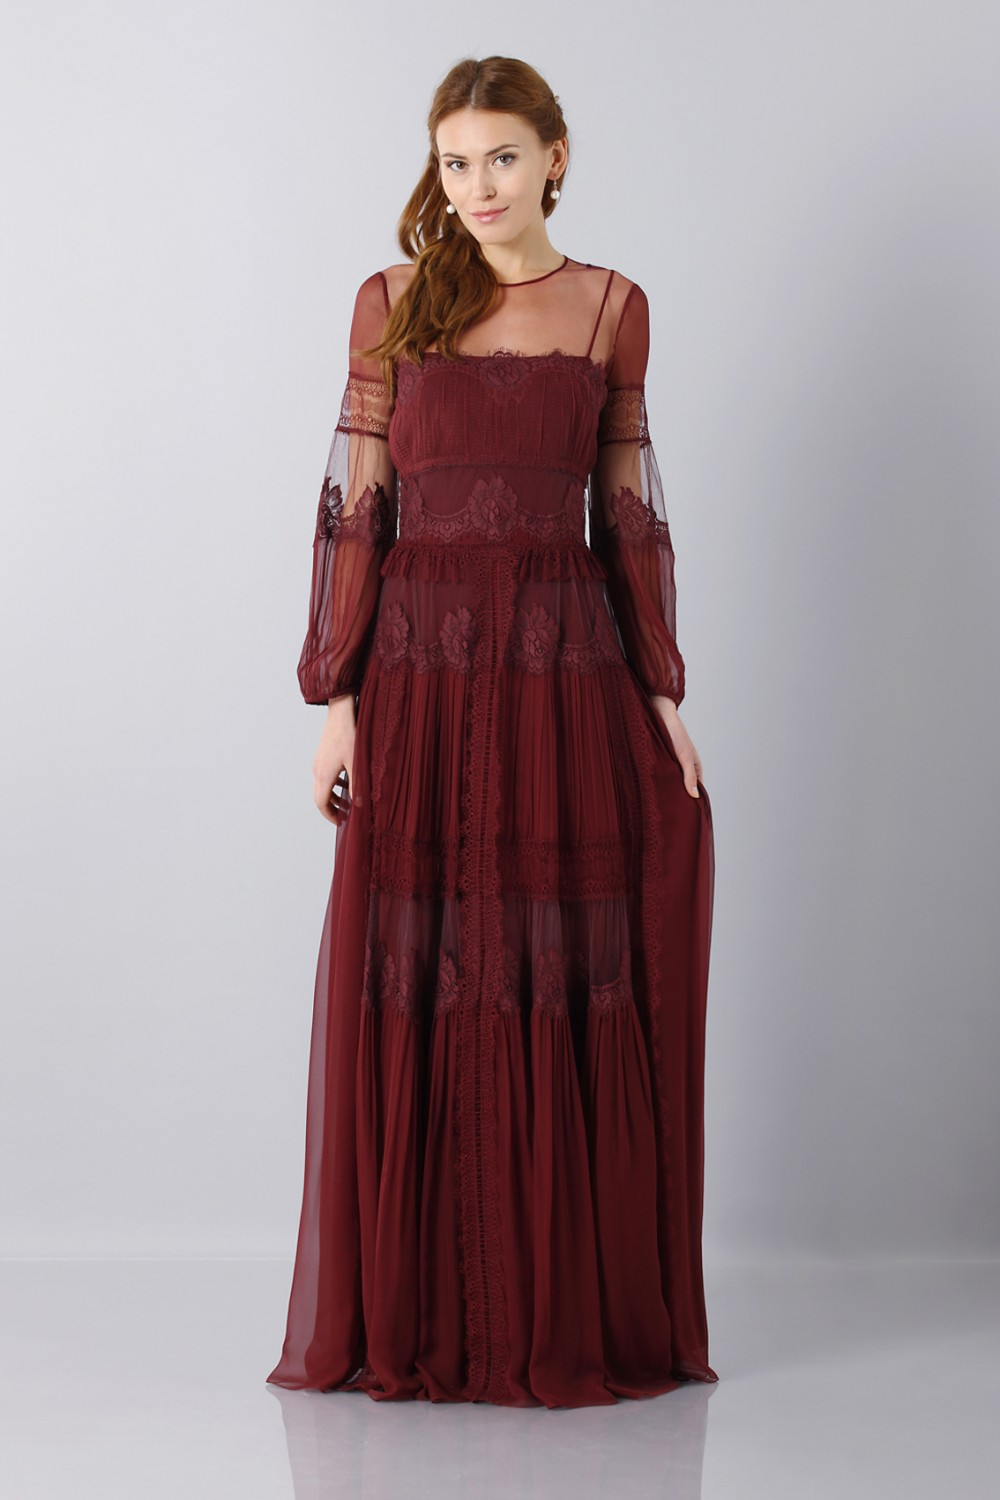 Lace dress with transparencies